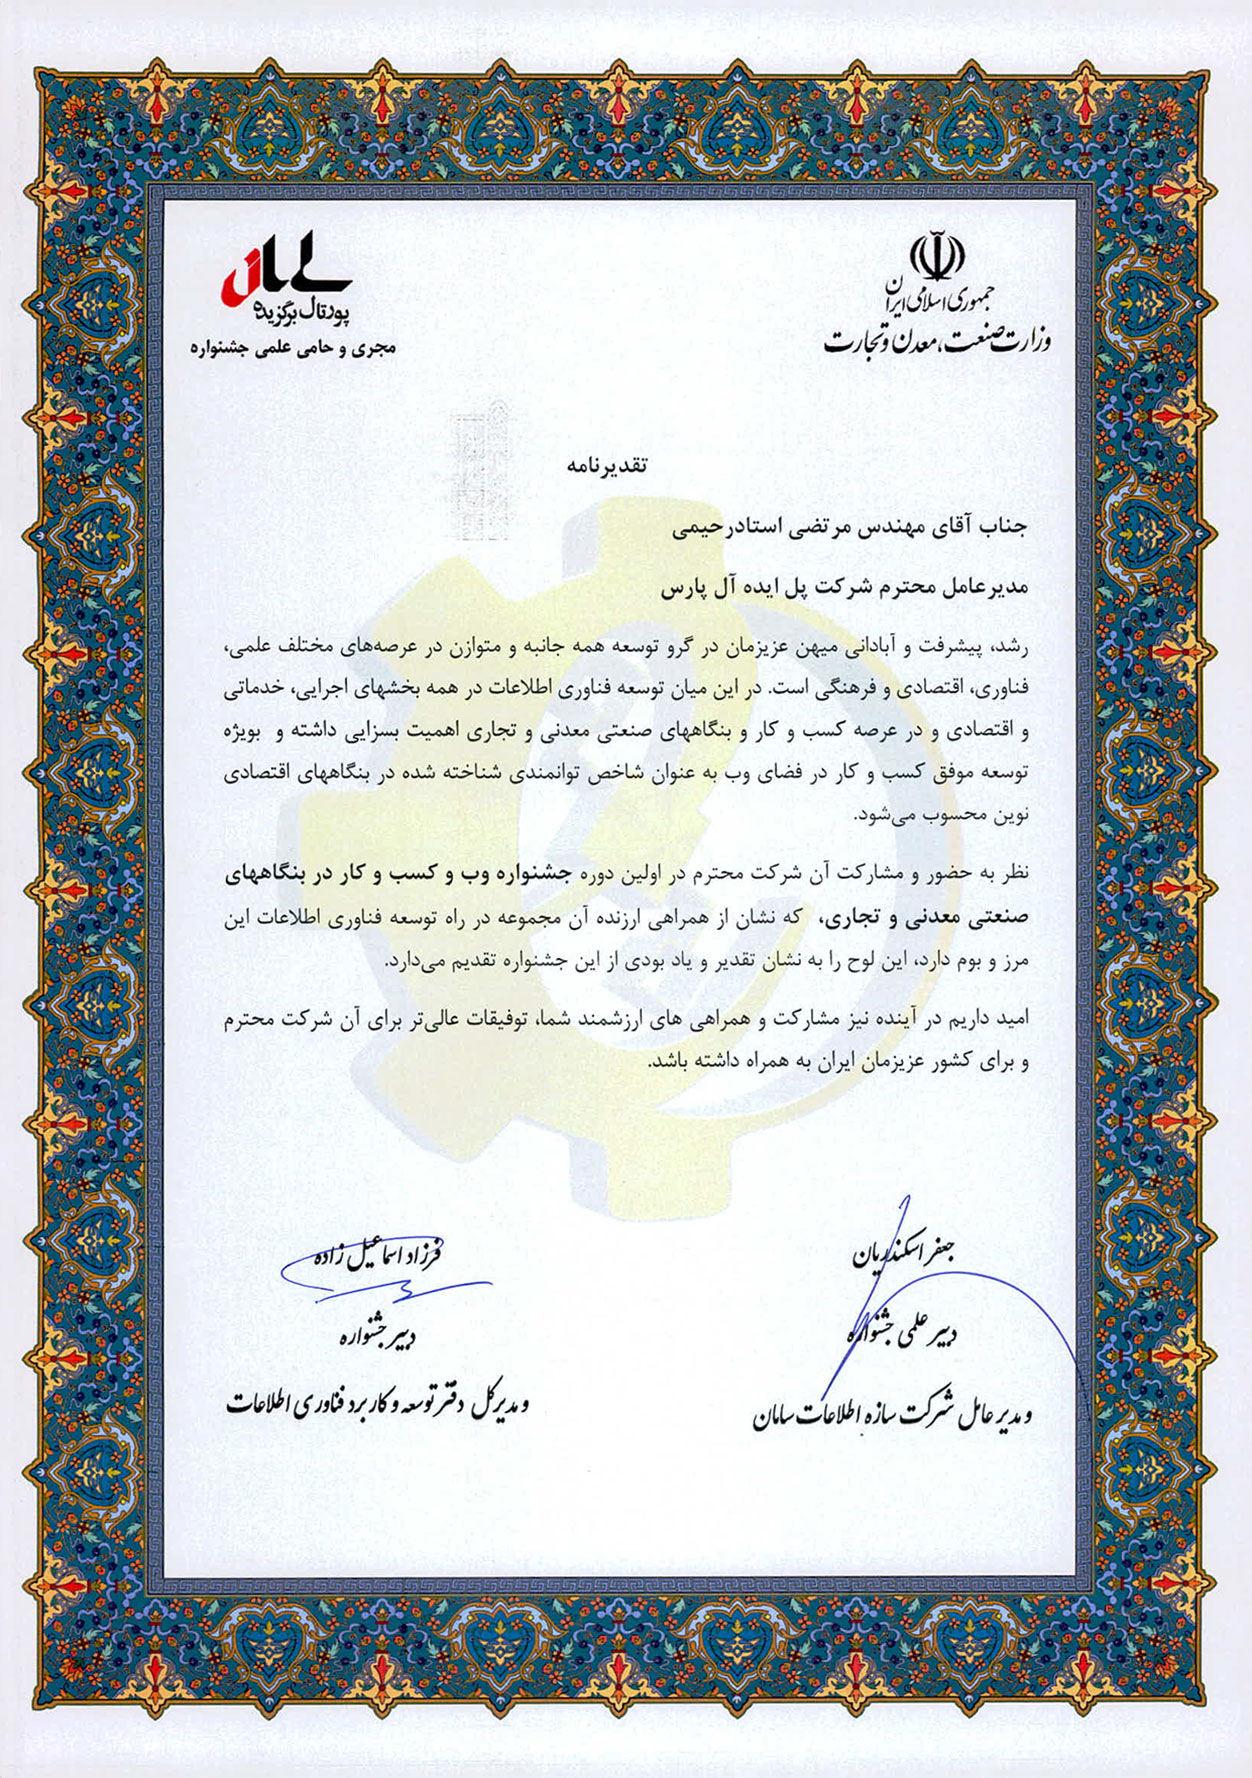 Letter of appreciation from the Ministry of Industries and Mines